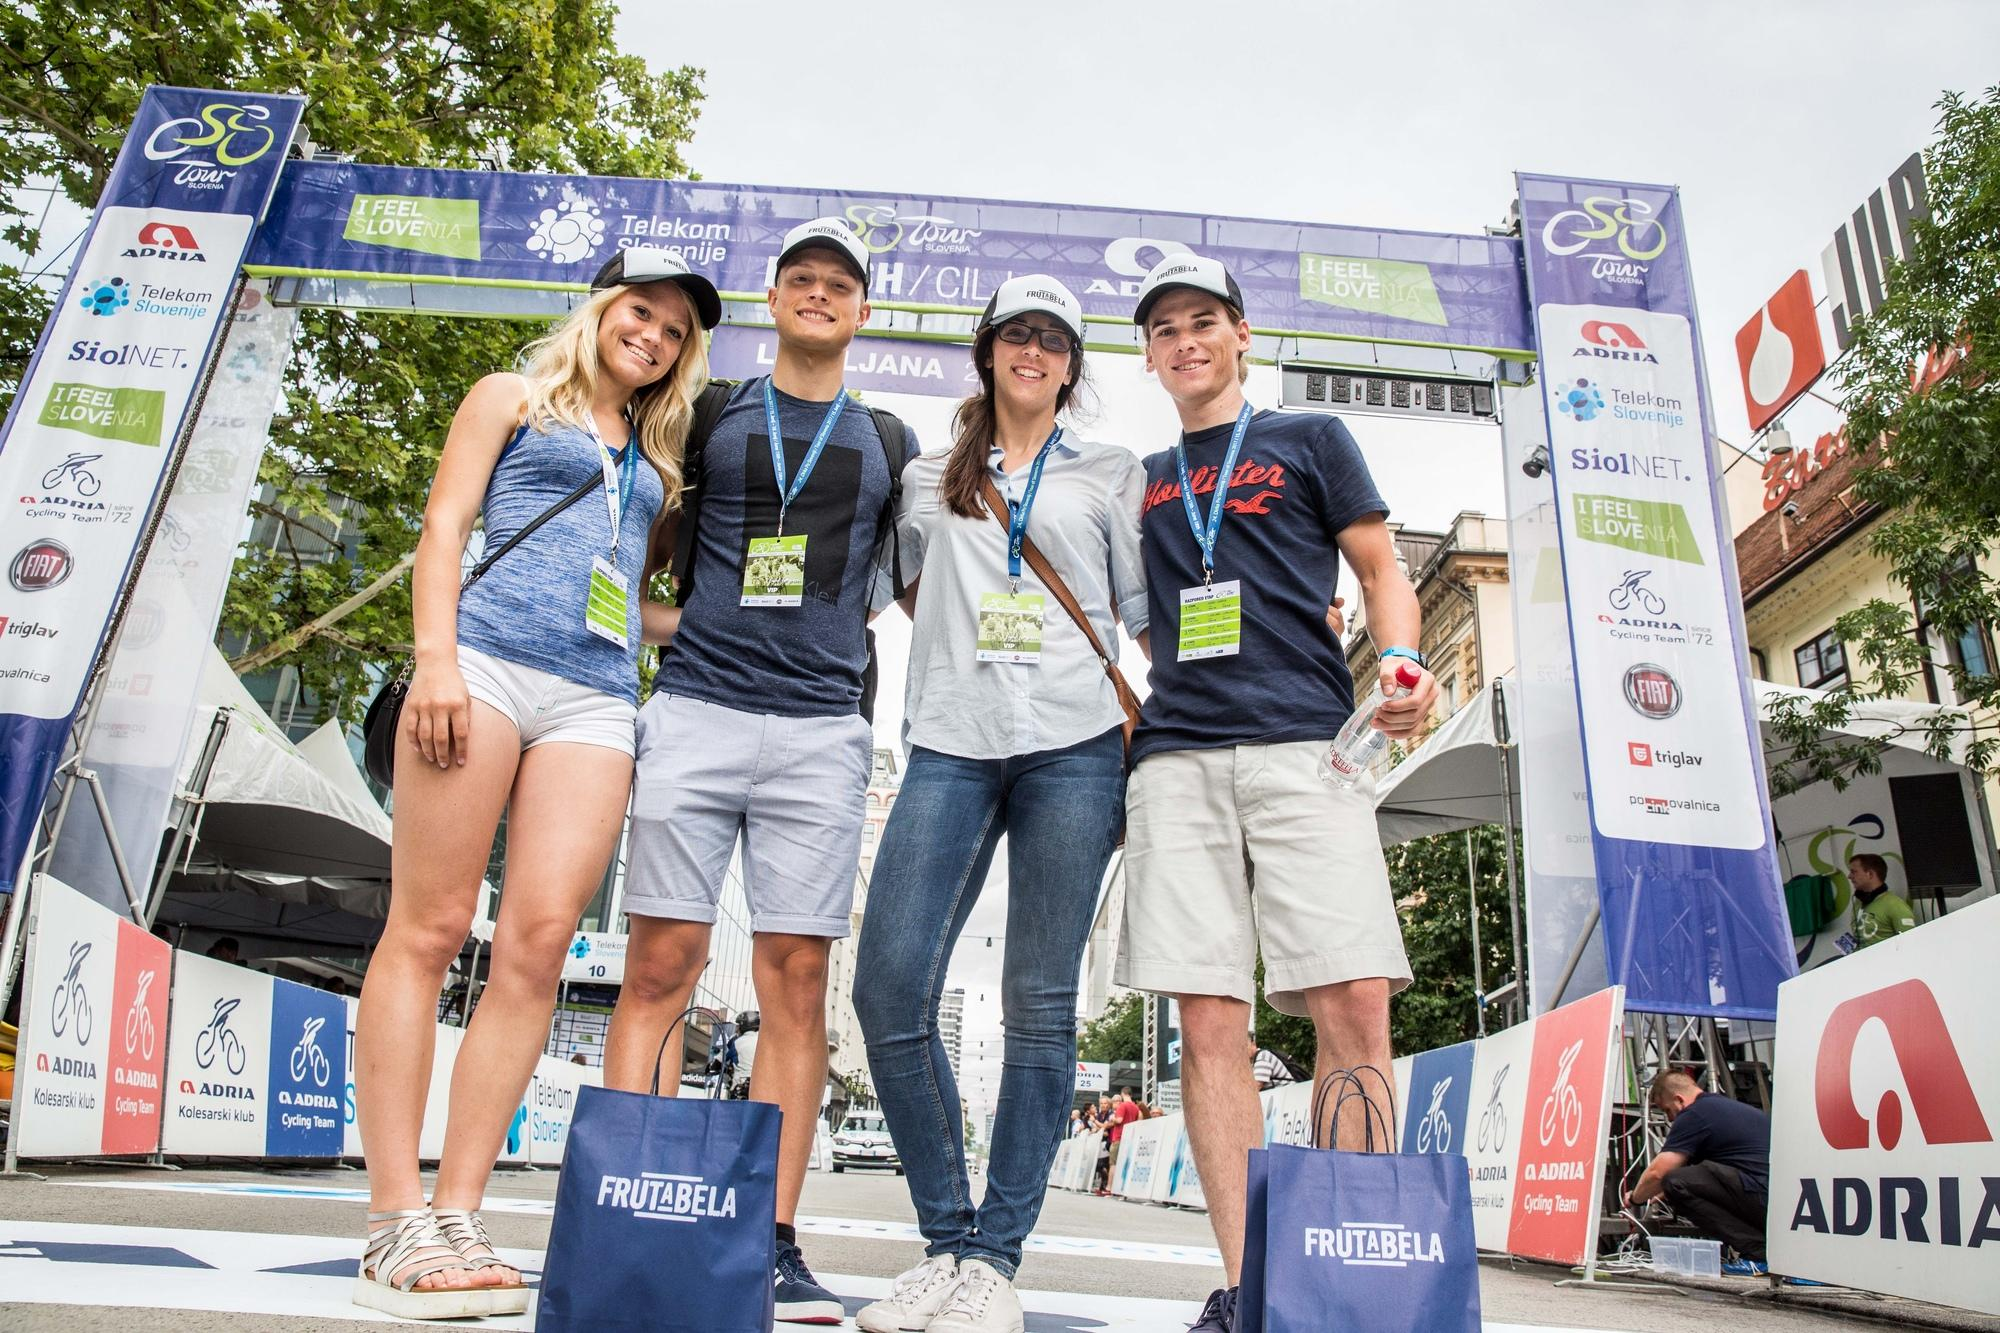 Frutabela team at finish line after the Stage 2 of 24th Tour of Slovenia 2017 / Tour de Slovenie from Ljubljana to Ljubljana (169,9 km) cycling race on June 16, 2017 in Slovenia. Photo by Vid Ponikvar / Sportida